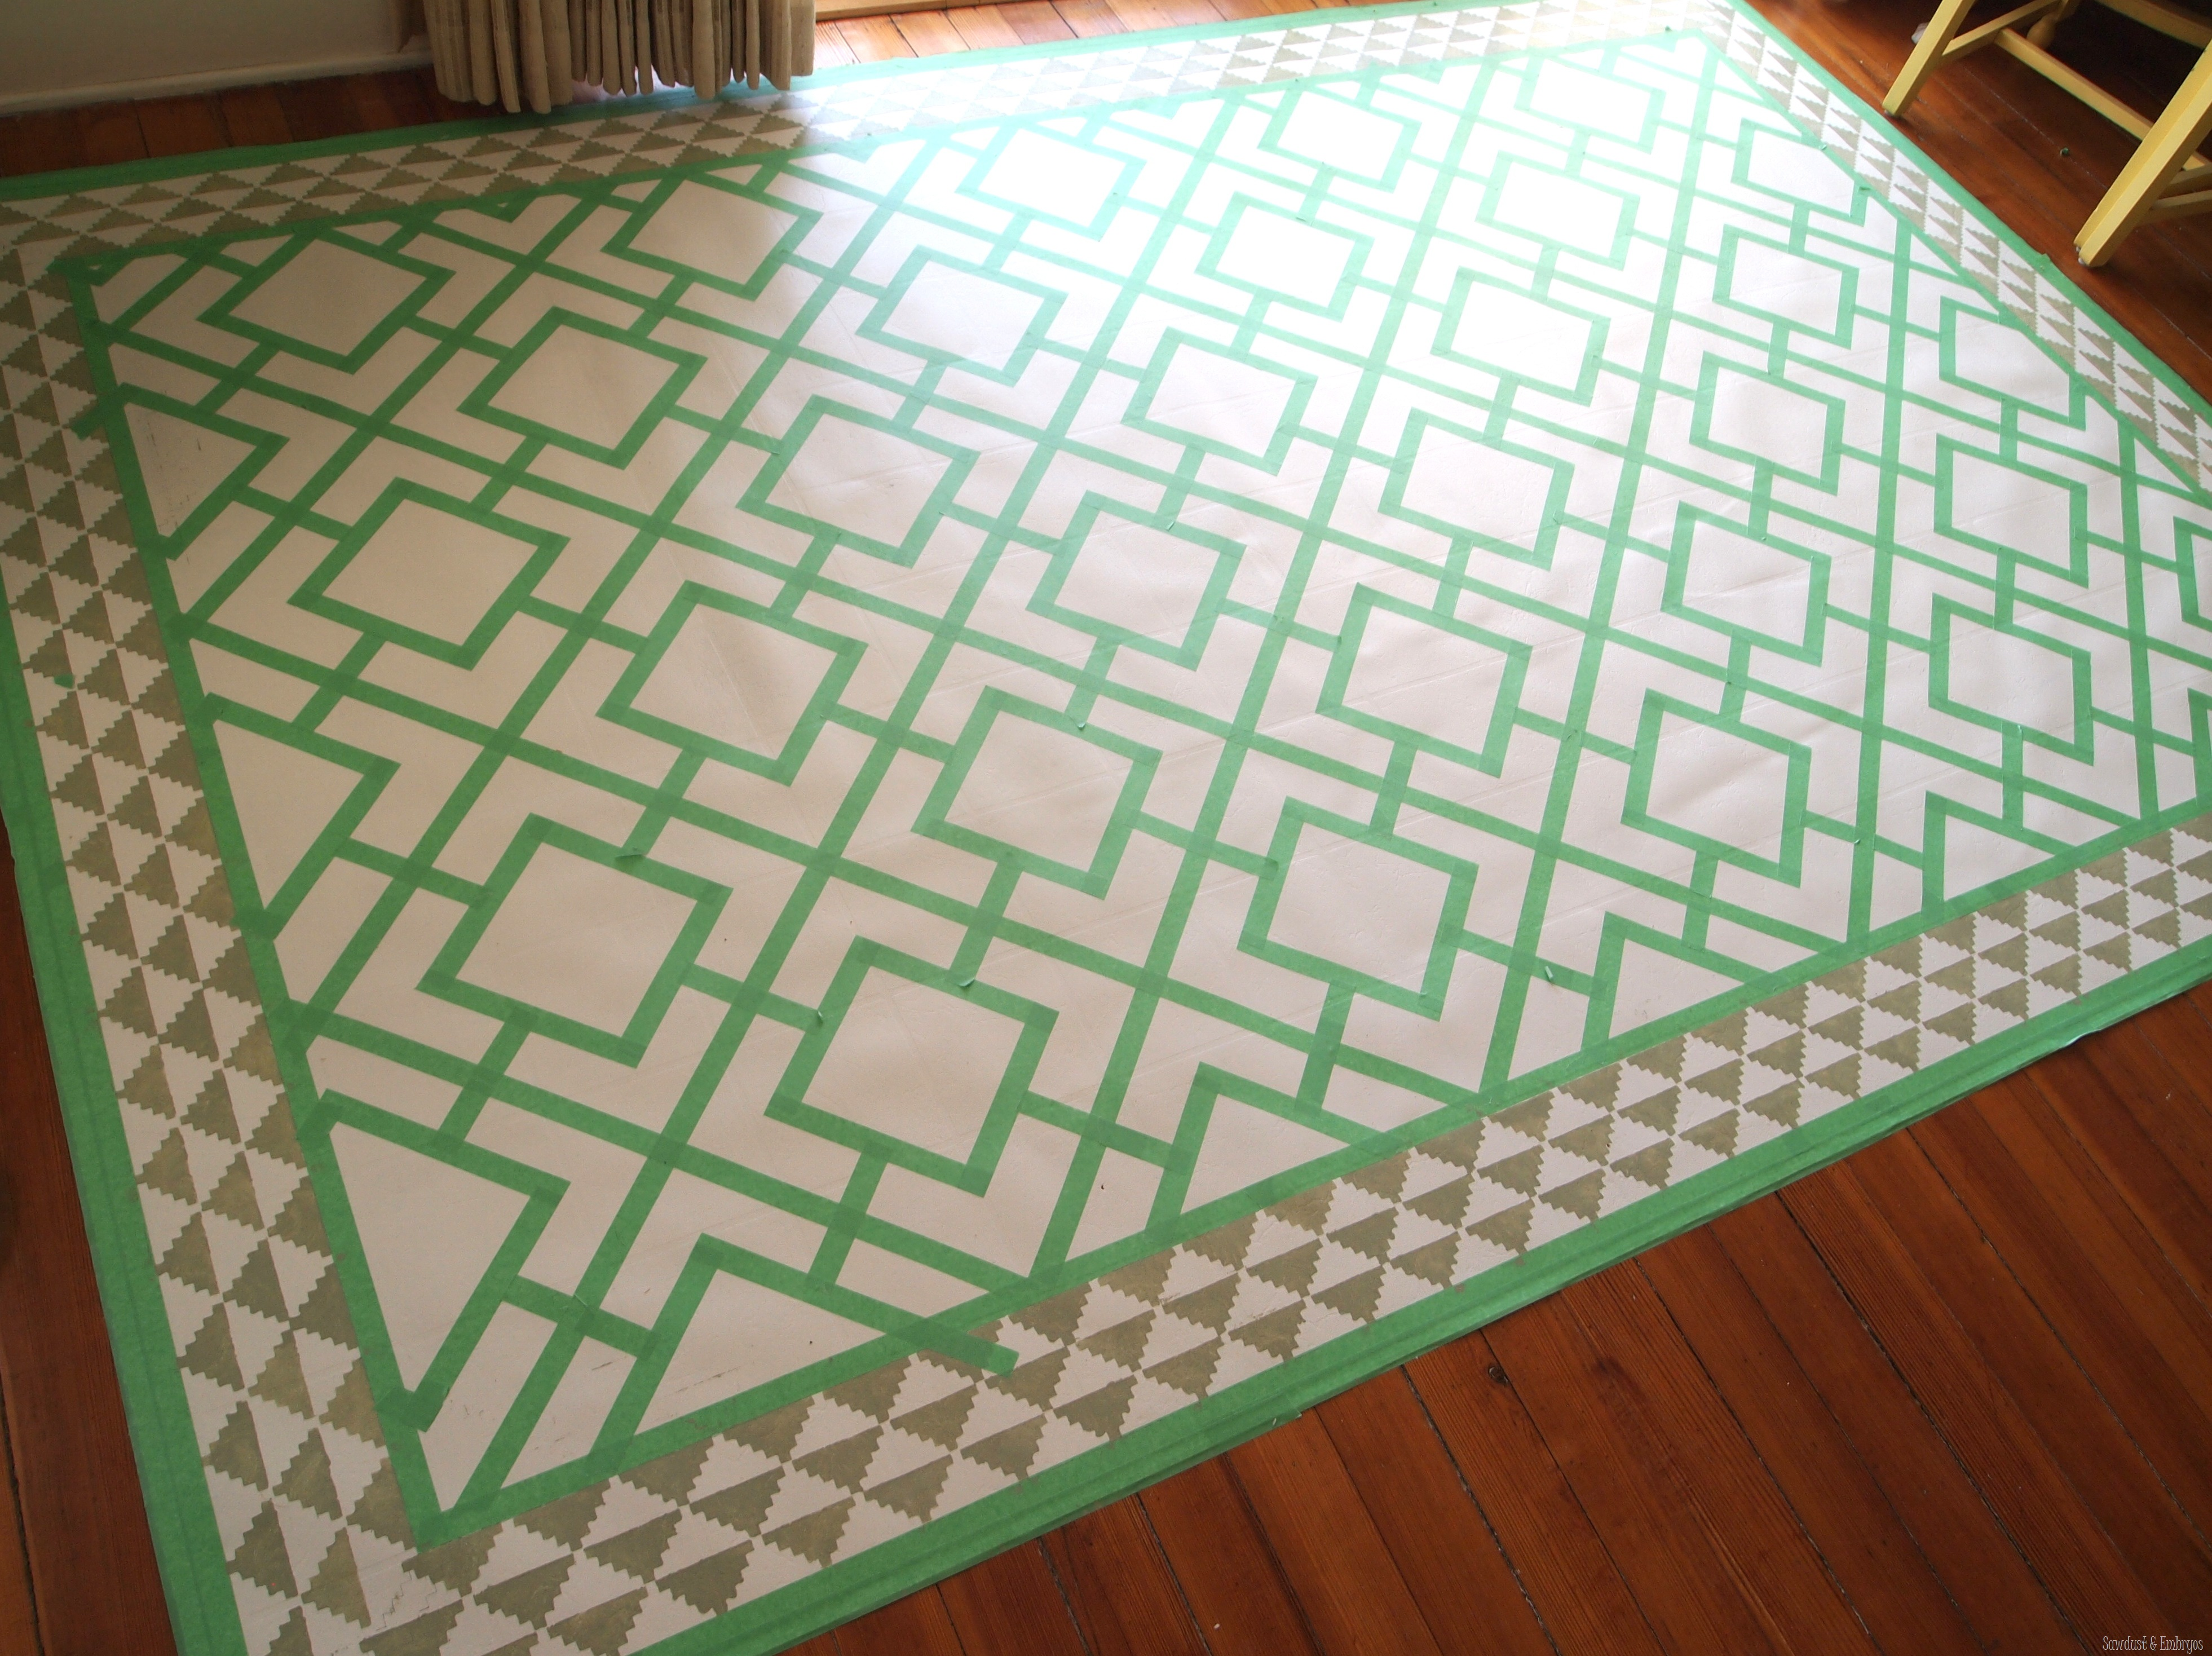 Diy painted linoleum area rug reality daydream paint a remnant of linoleum to look like a legit area rug for under your dining solutioingenieria Images